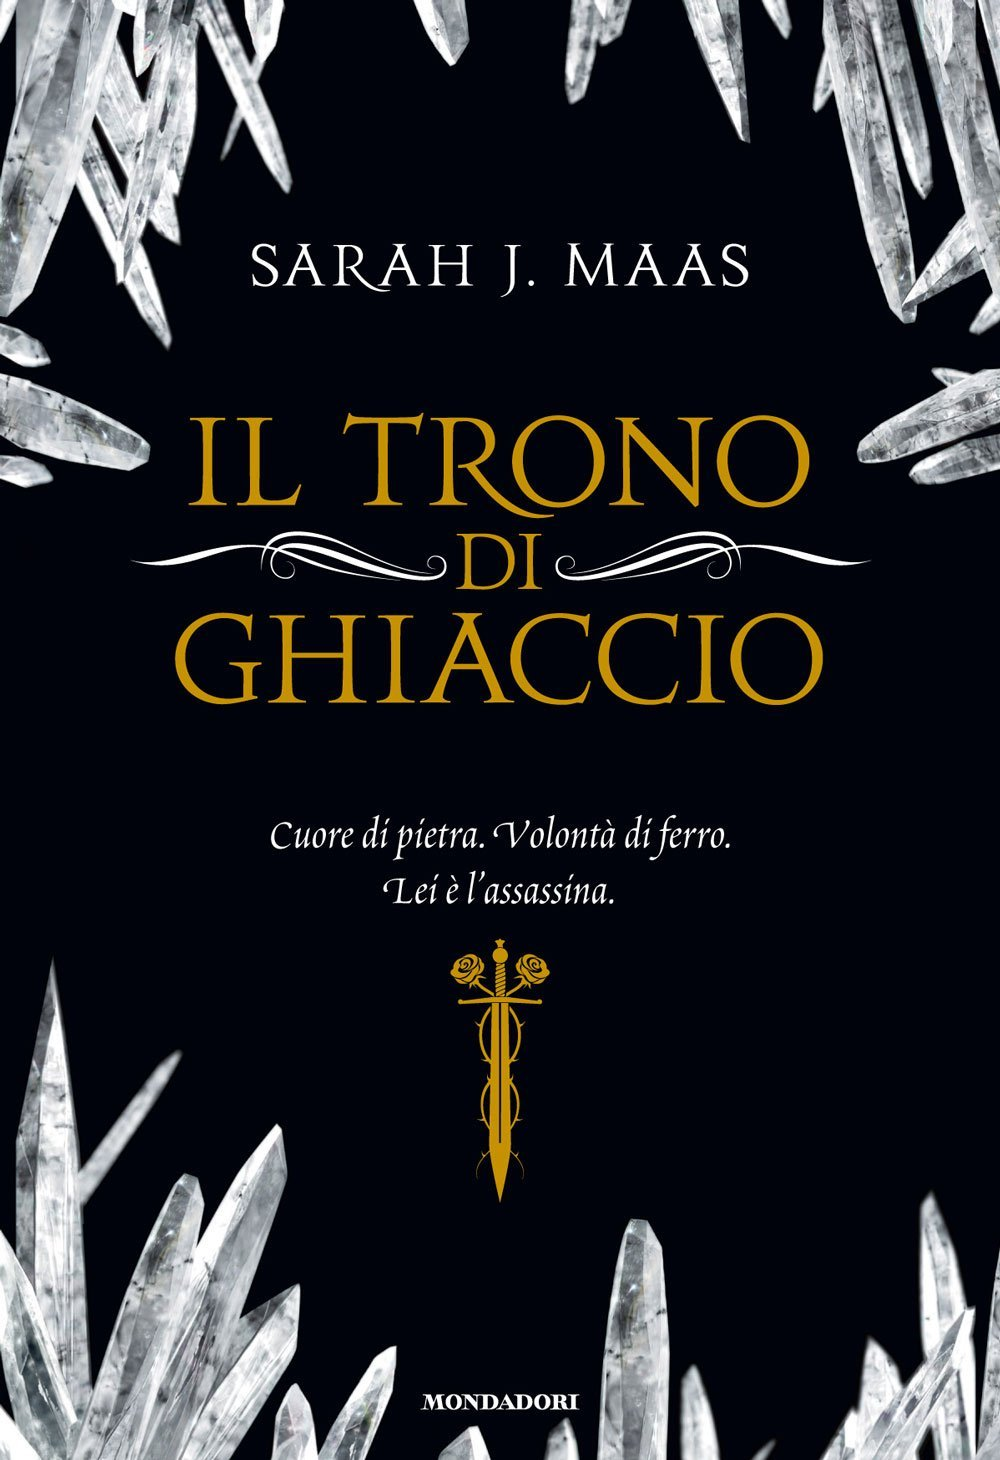 Il Trono Di Ghiaccio Pdf Download - osobocreate